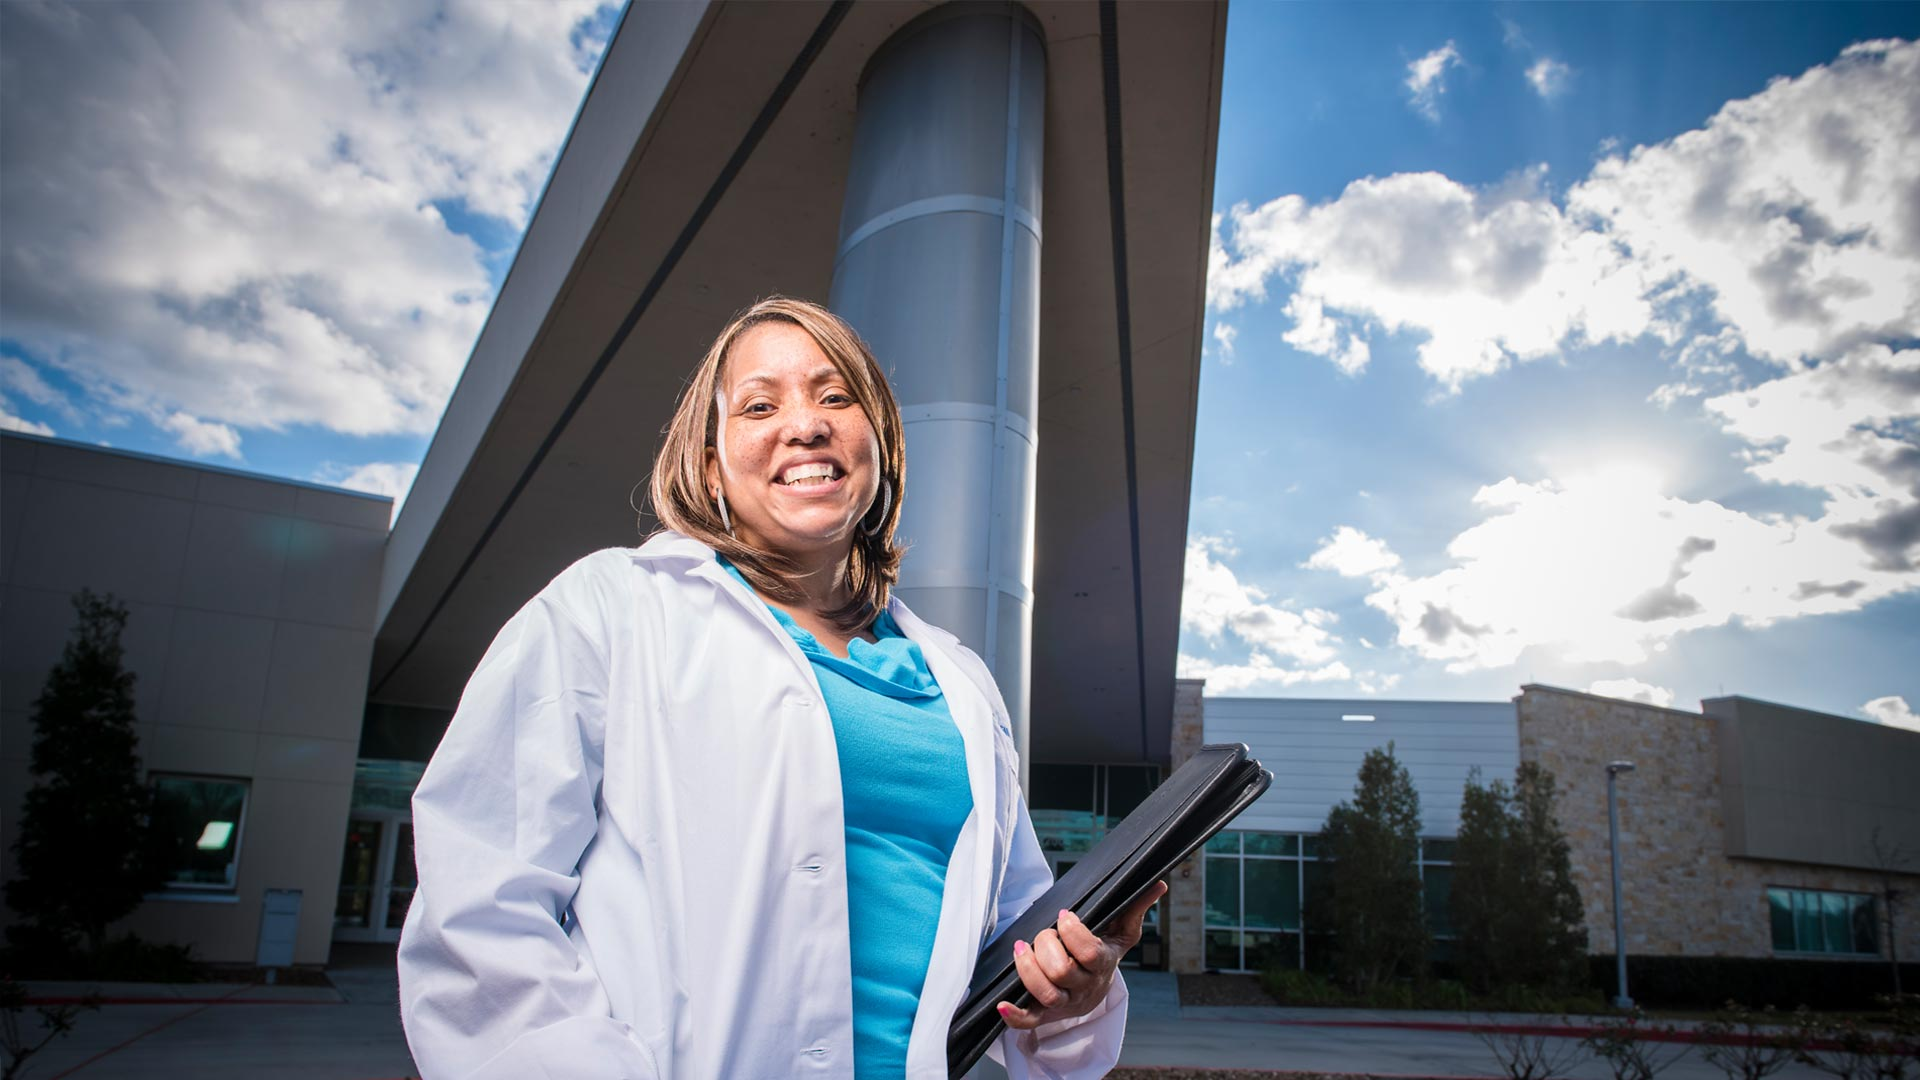 Building professions: Health Sciences Center at UHCL Pearland Campus